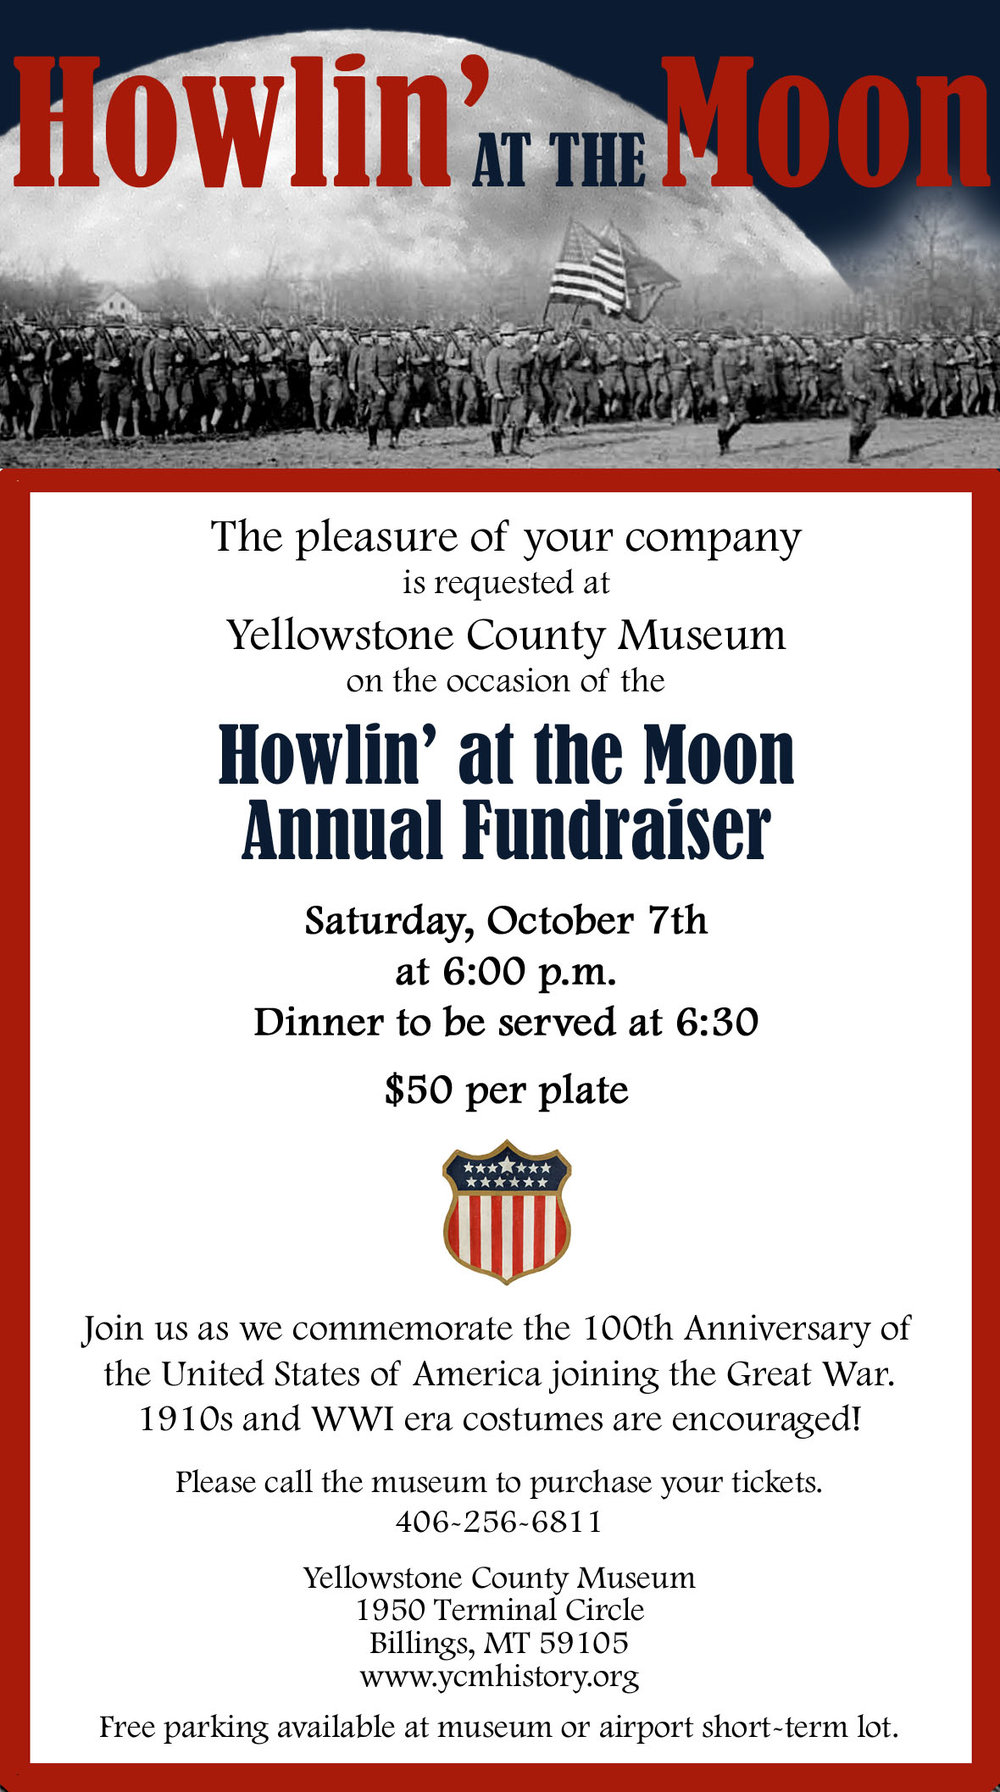 Howlin' at the Moon Event Page-Click Here for More Information